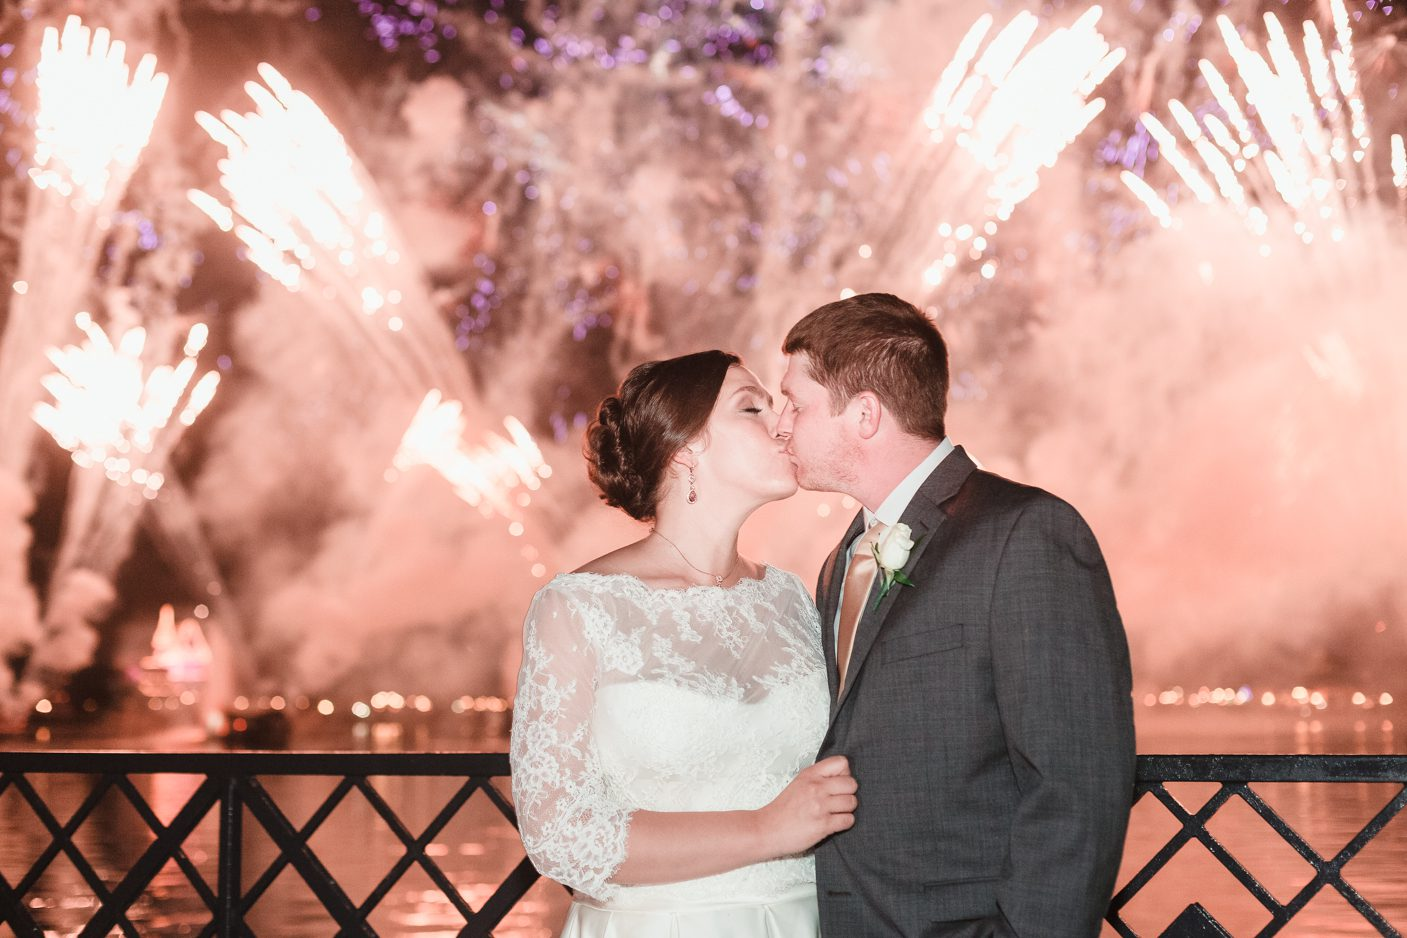 Fireworks at Epcot during a dessert party wedding at Disney in Orlando